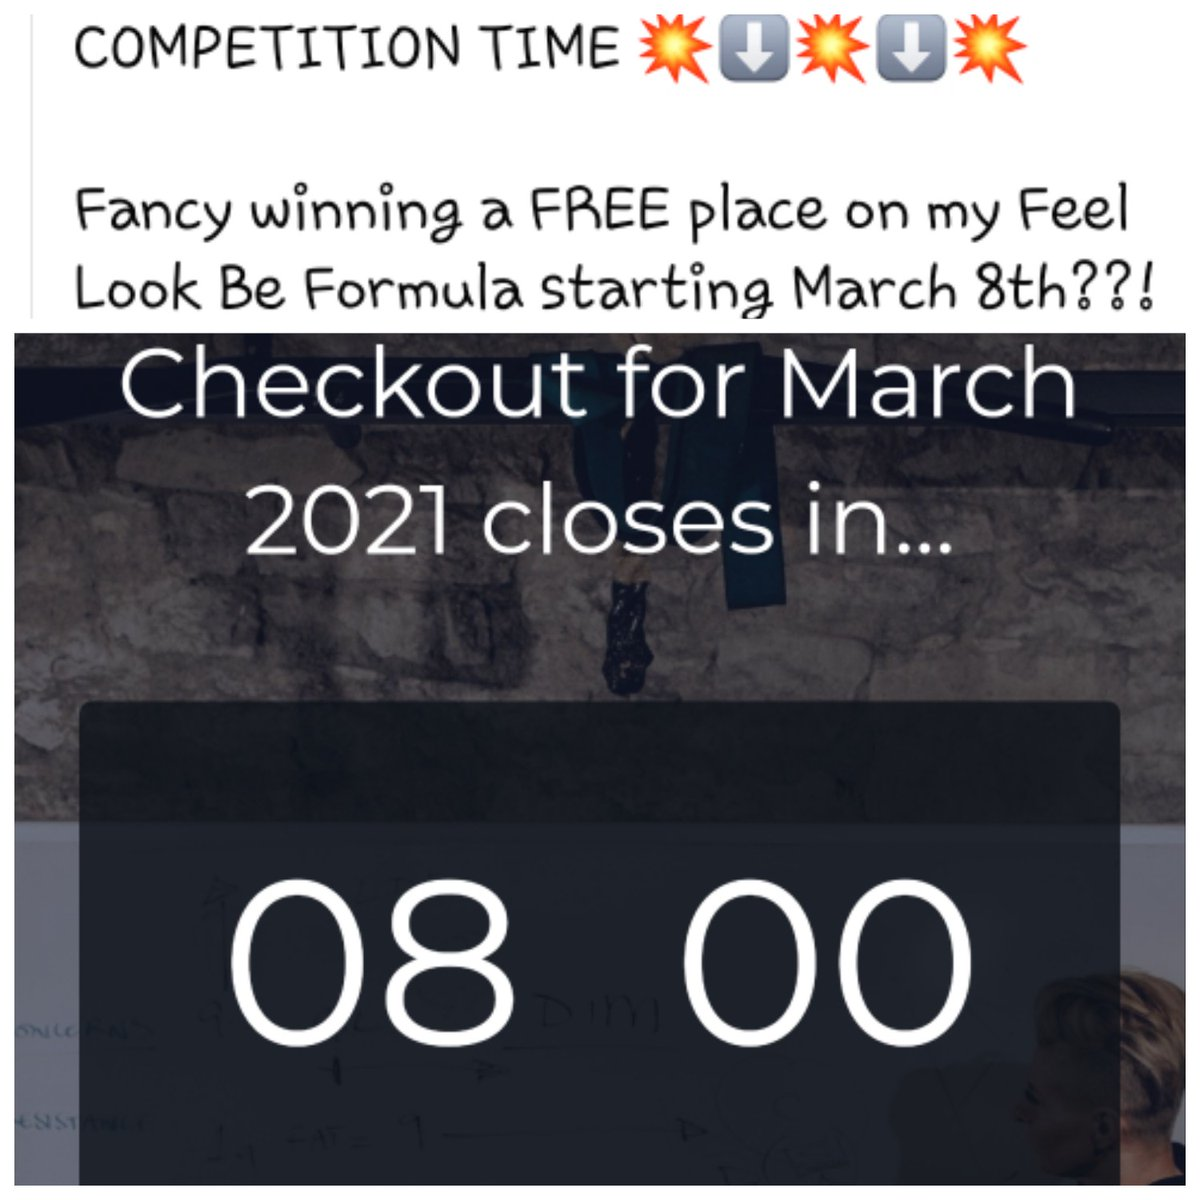 Ooh everyone loves a chance of a freebie 😍 This programme is changing womens lives all around the world 🤩 #lifestyle #Competition #win #healthy #fit #grateful #women #Diet #coach